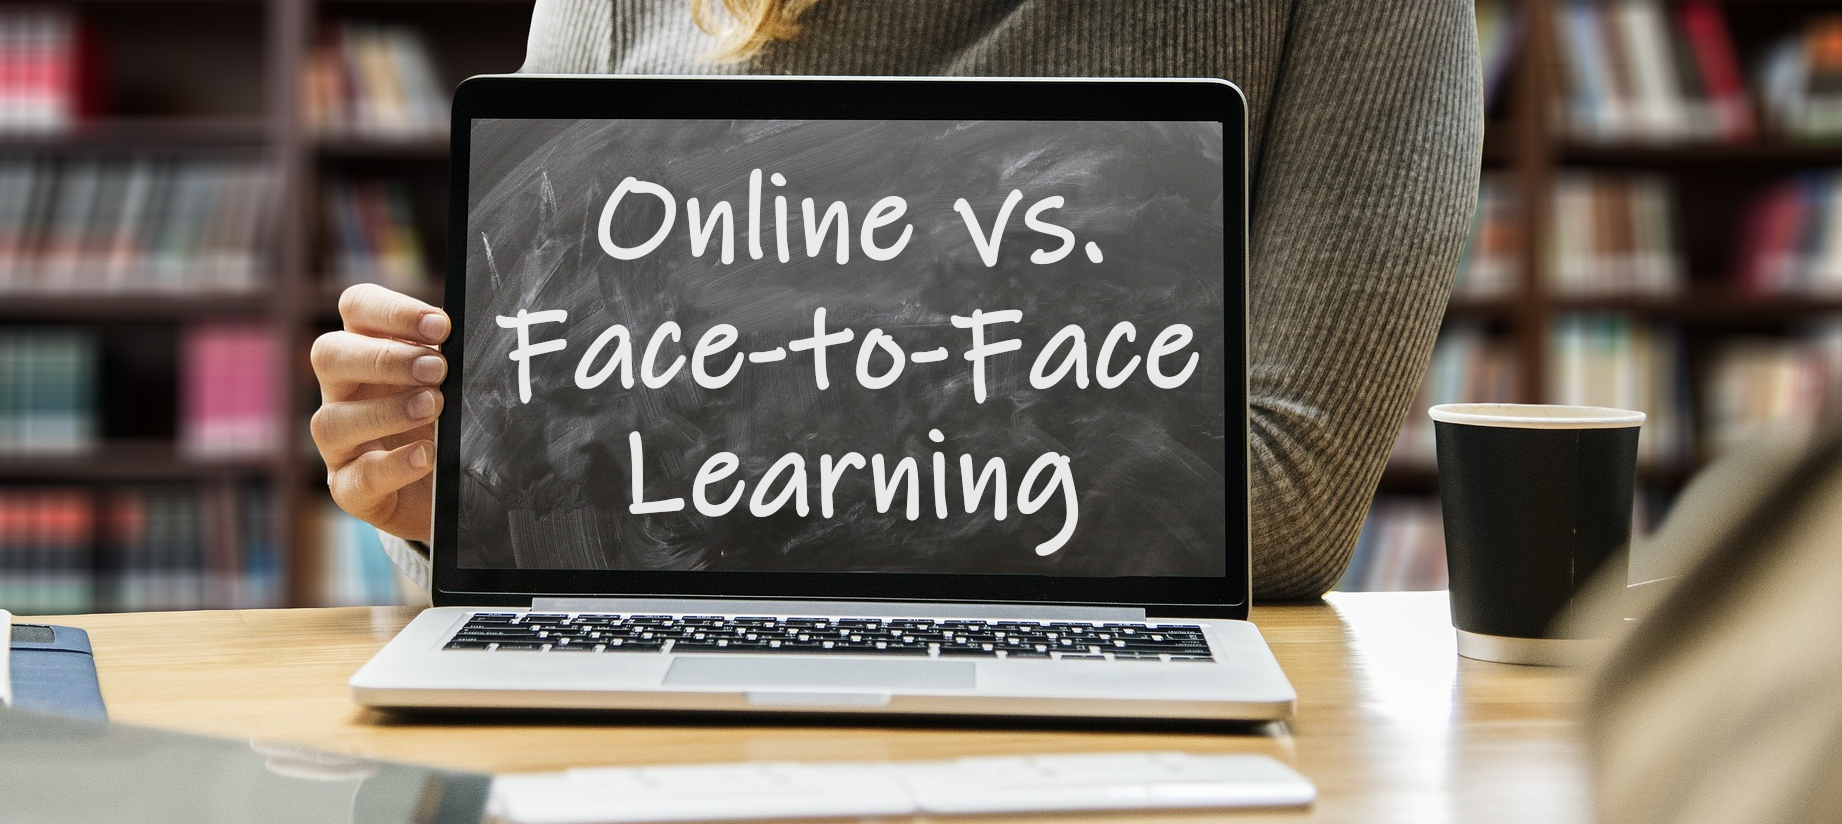 Online vs. Face-to-Face Learning, which is Better? – Sovorel